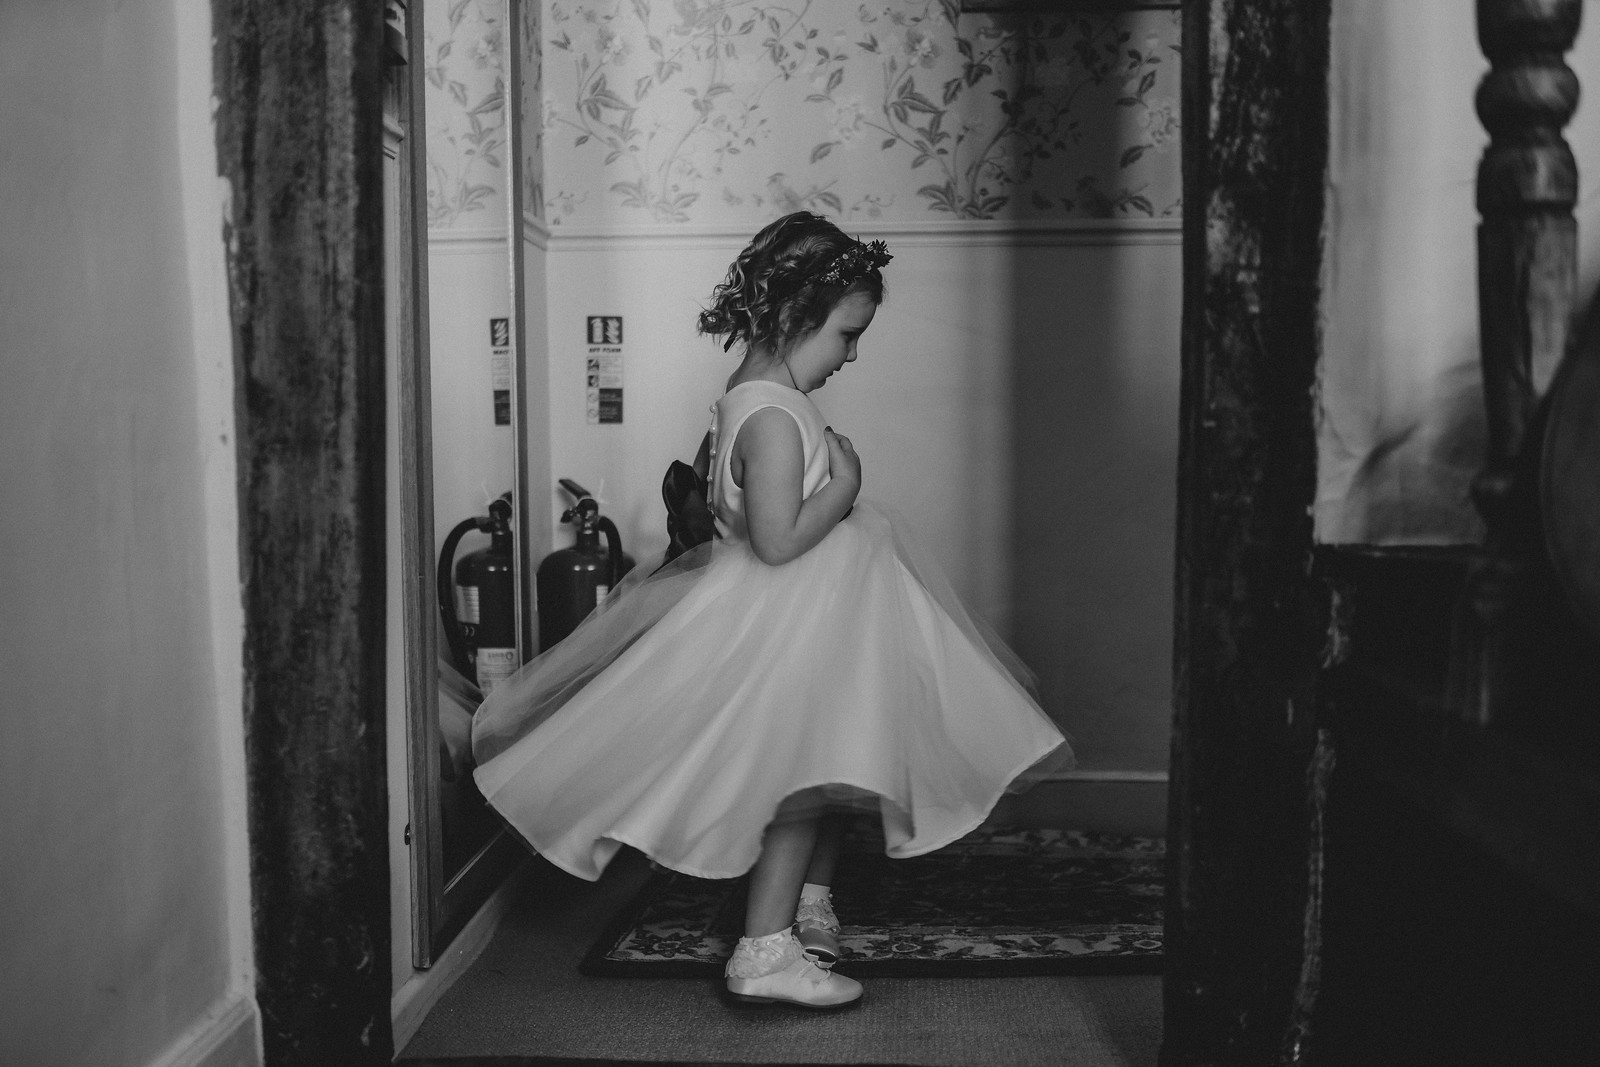 Young Childs looks in the mirror with her dress on for the wedding